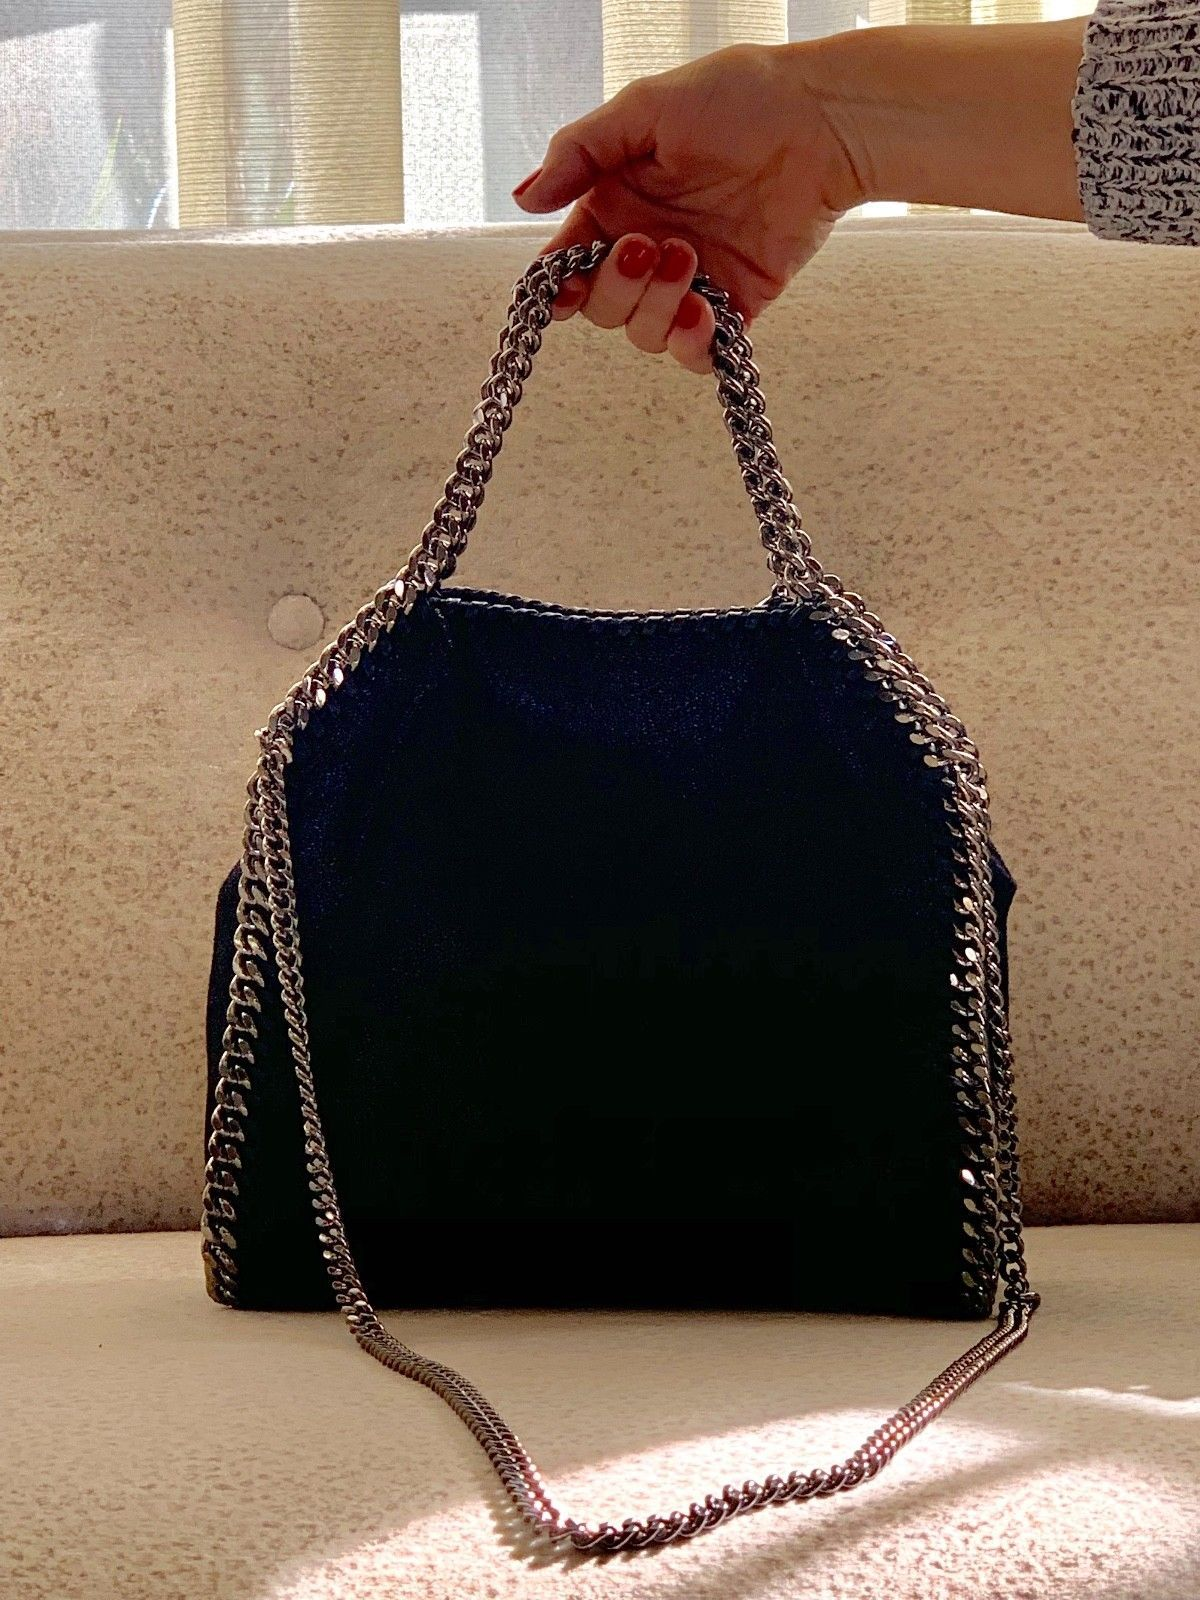 0ca819c21872 Details about NWoT Stella McCartney Falabella Foldover bag black in ...